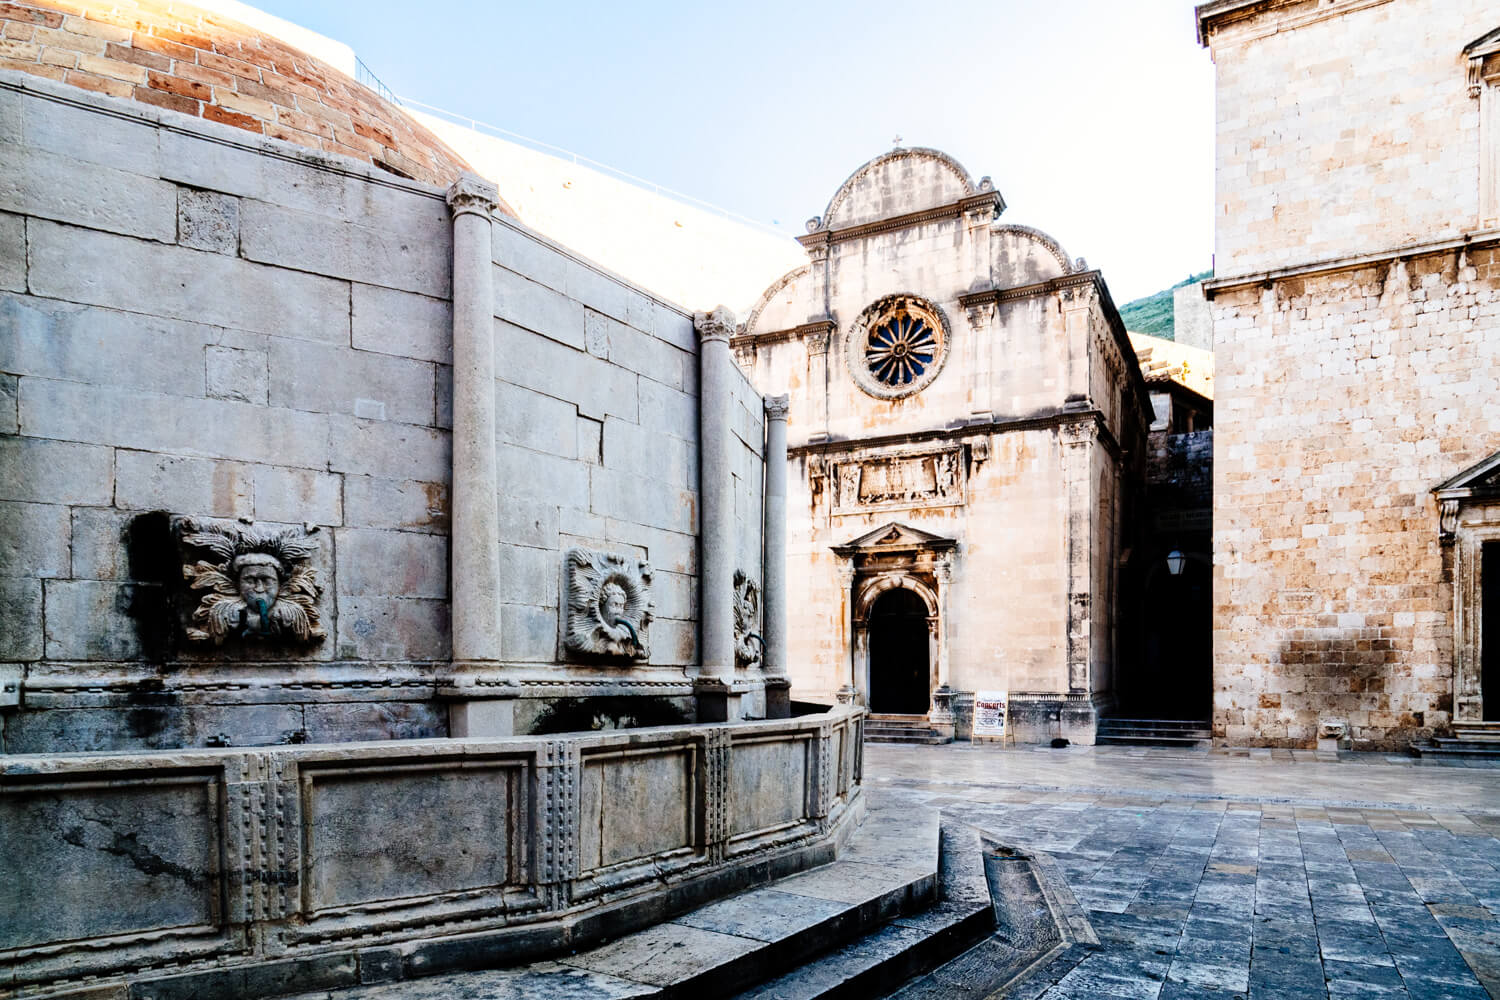 Dubrovnik's Old Town Fountain